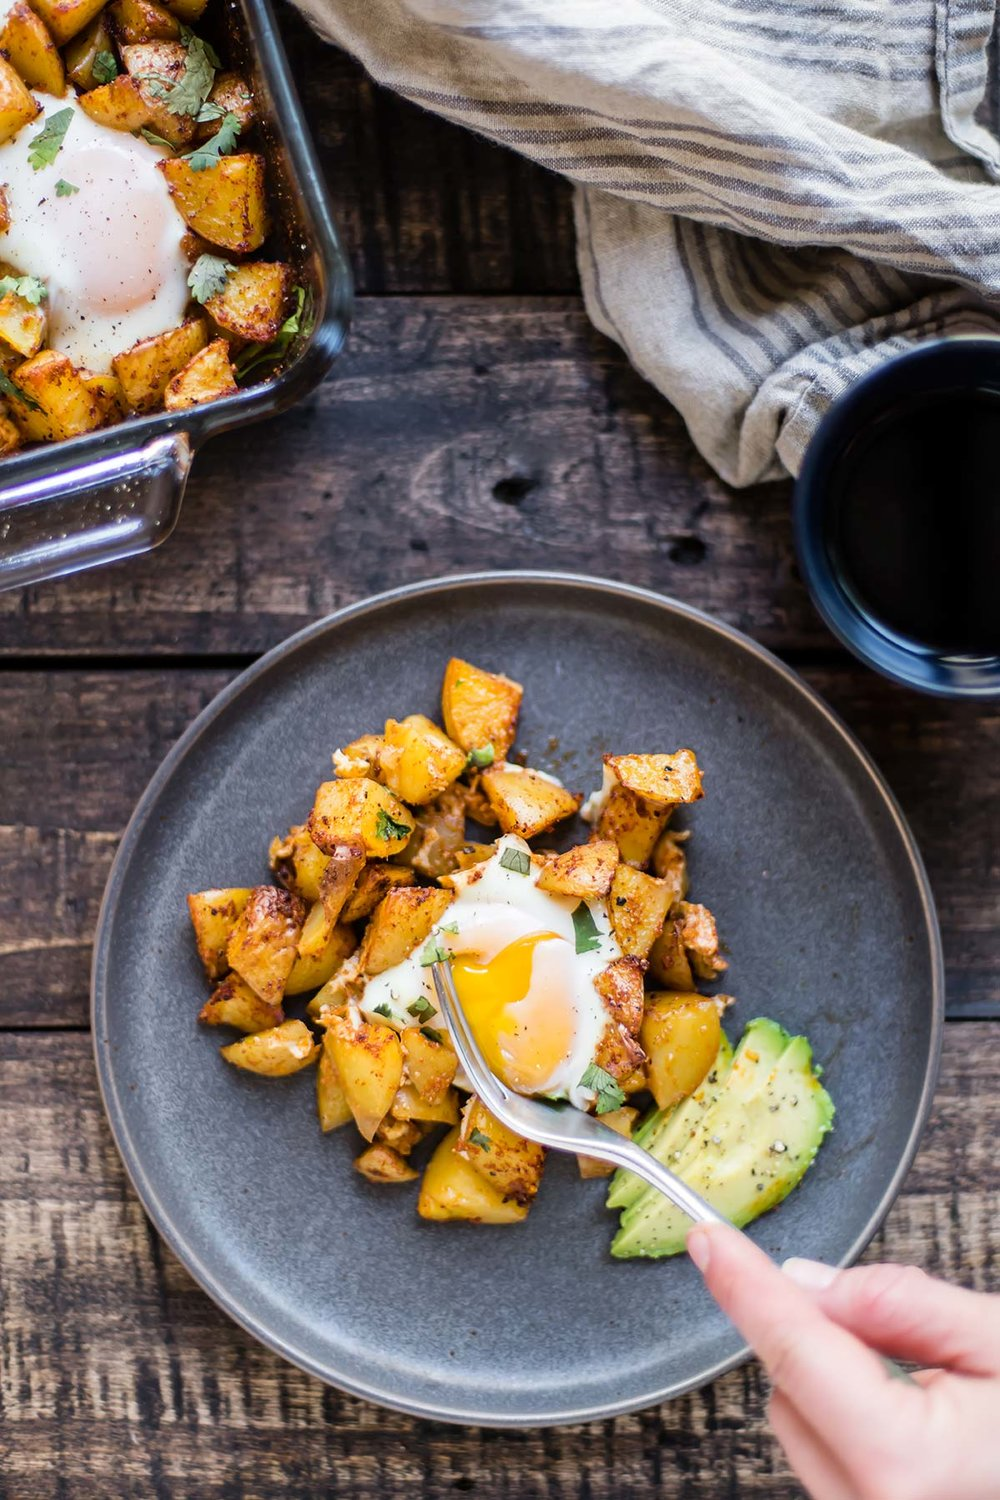 Tex-Mex Potatoes & Eggs